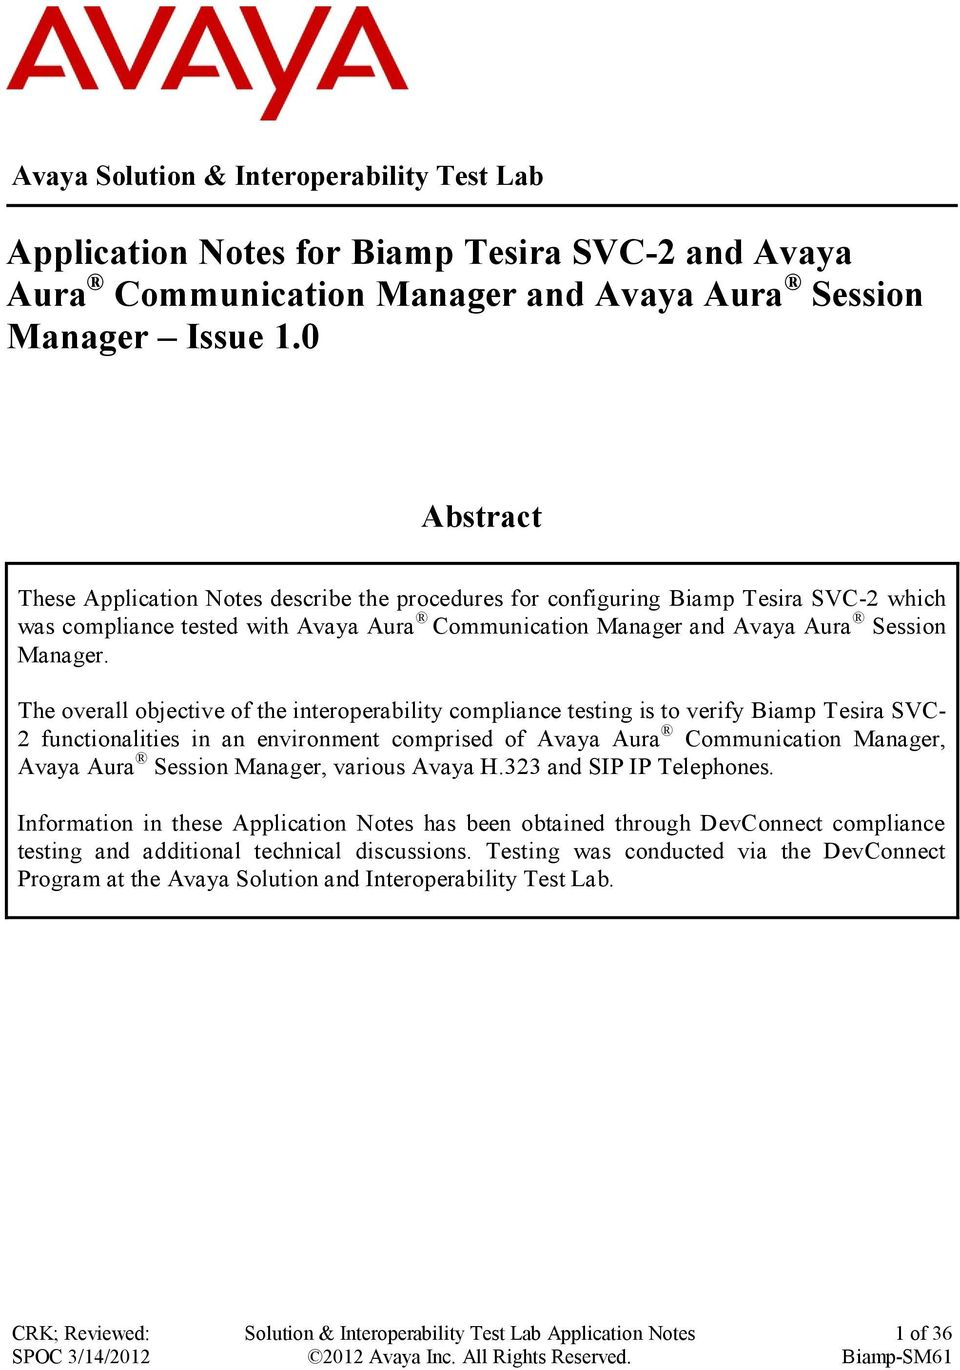 The overall objective of the interoperability compliance testing is to verify Biamp Tesira SVC- 2 functionalities in an environment comprised of Avaya Aura Communication Manager, Avaya Aura Session